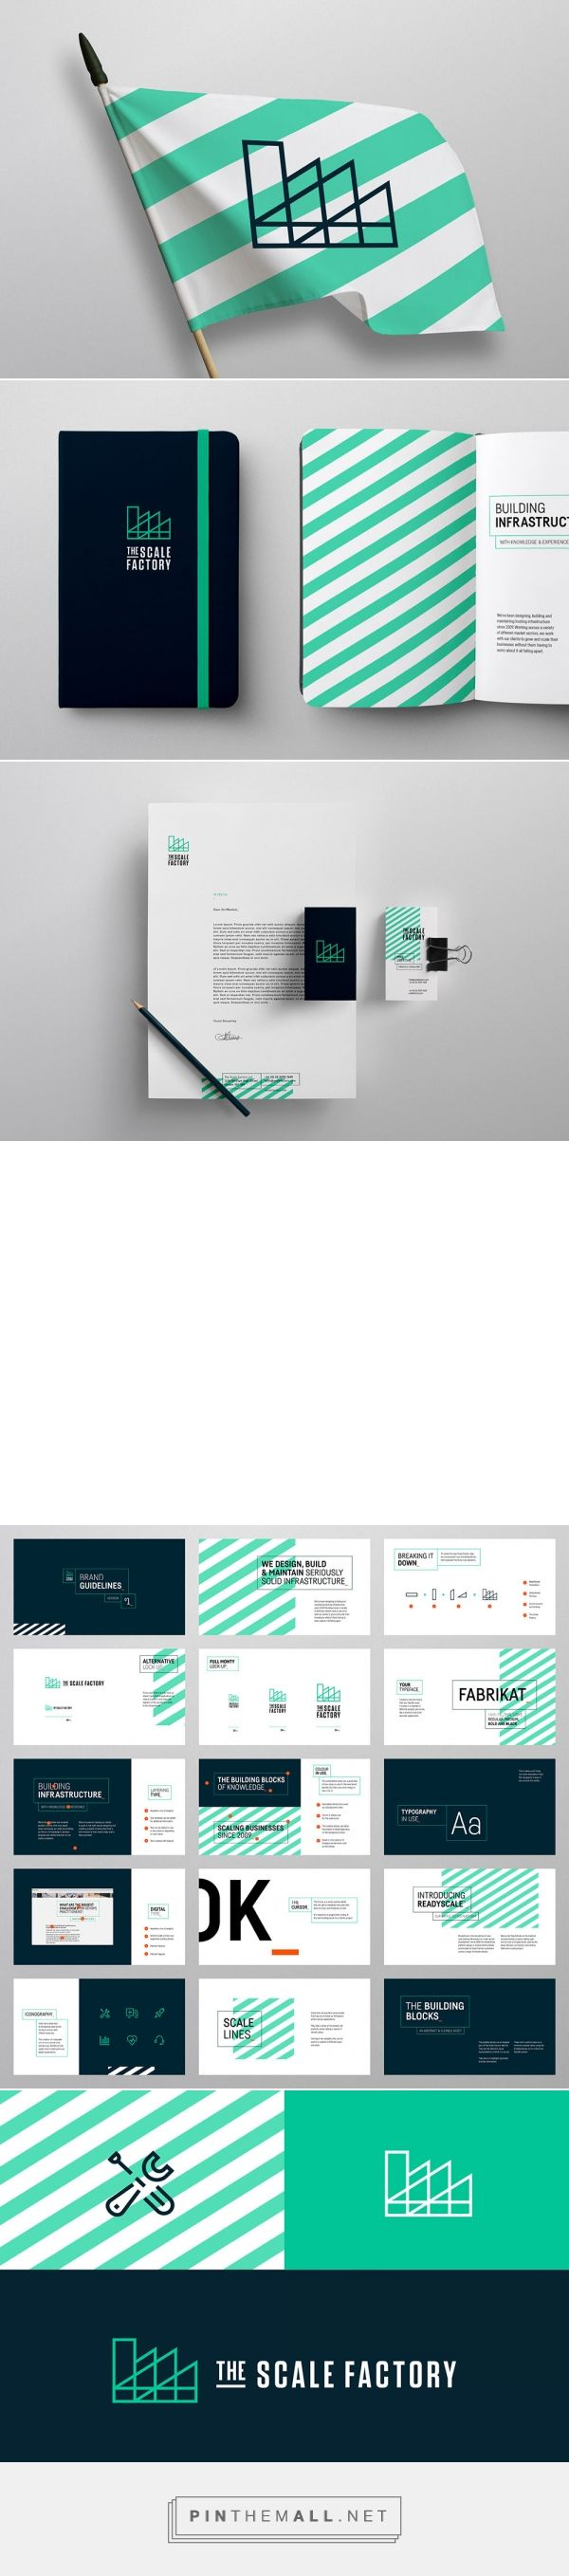 The Scale Factory | Identity Designed - created via https://pinthemall.net